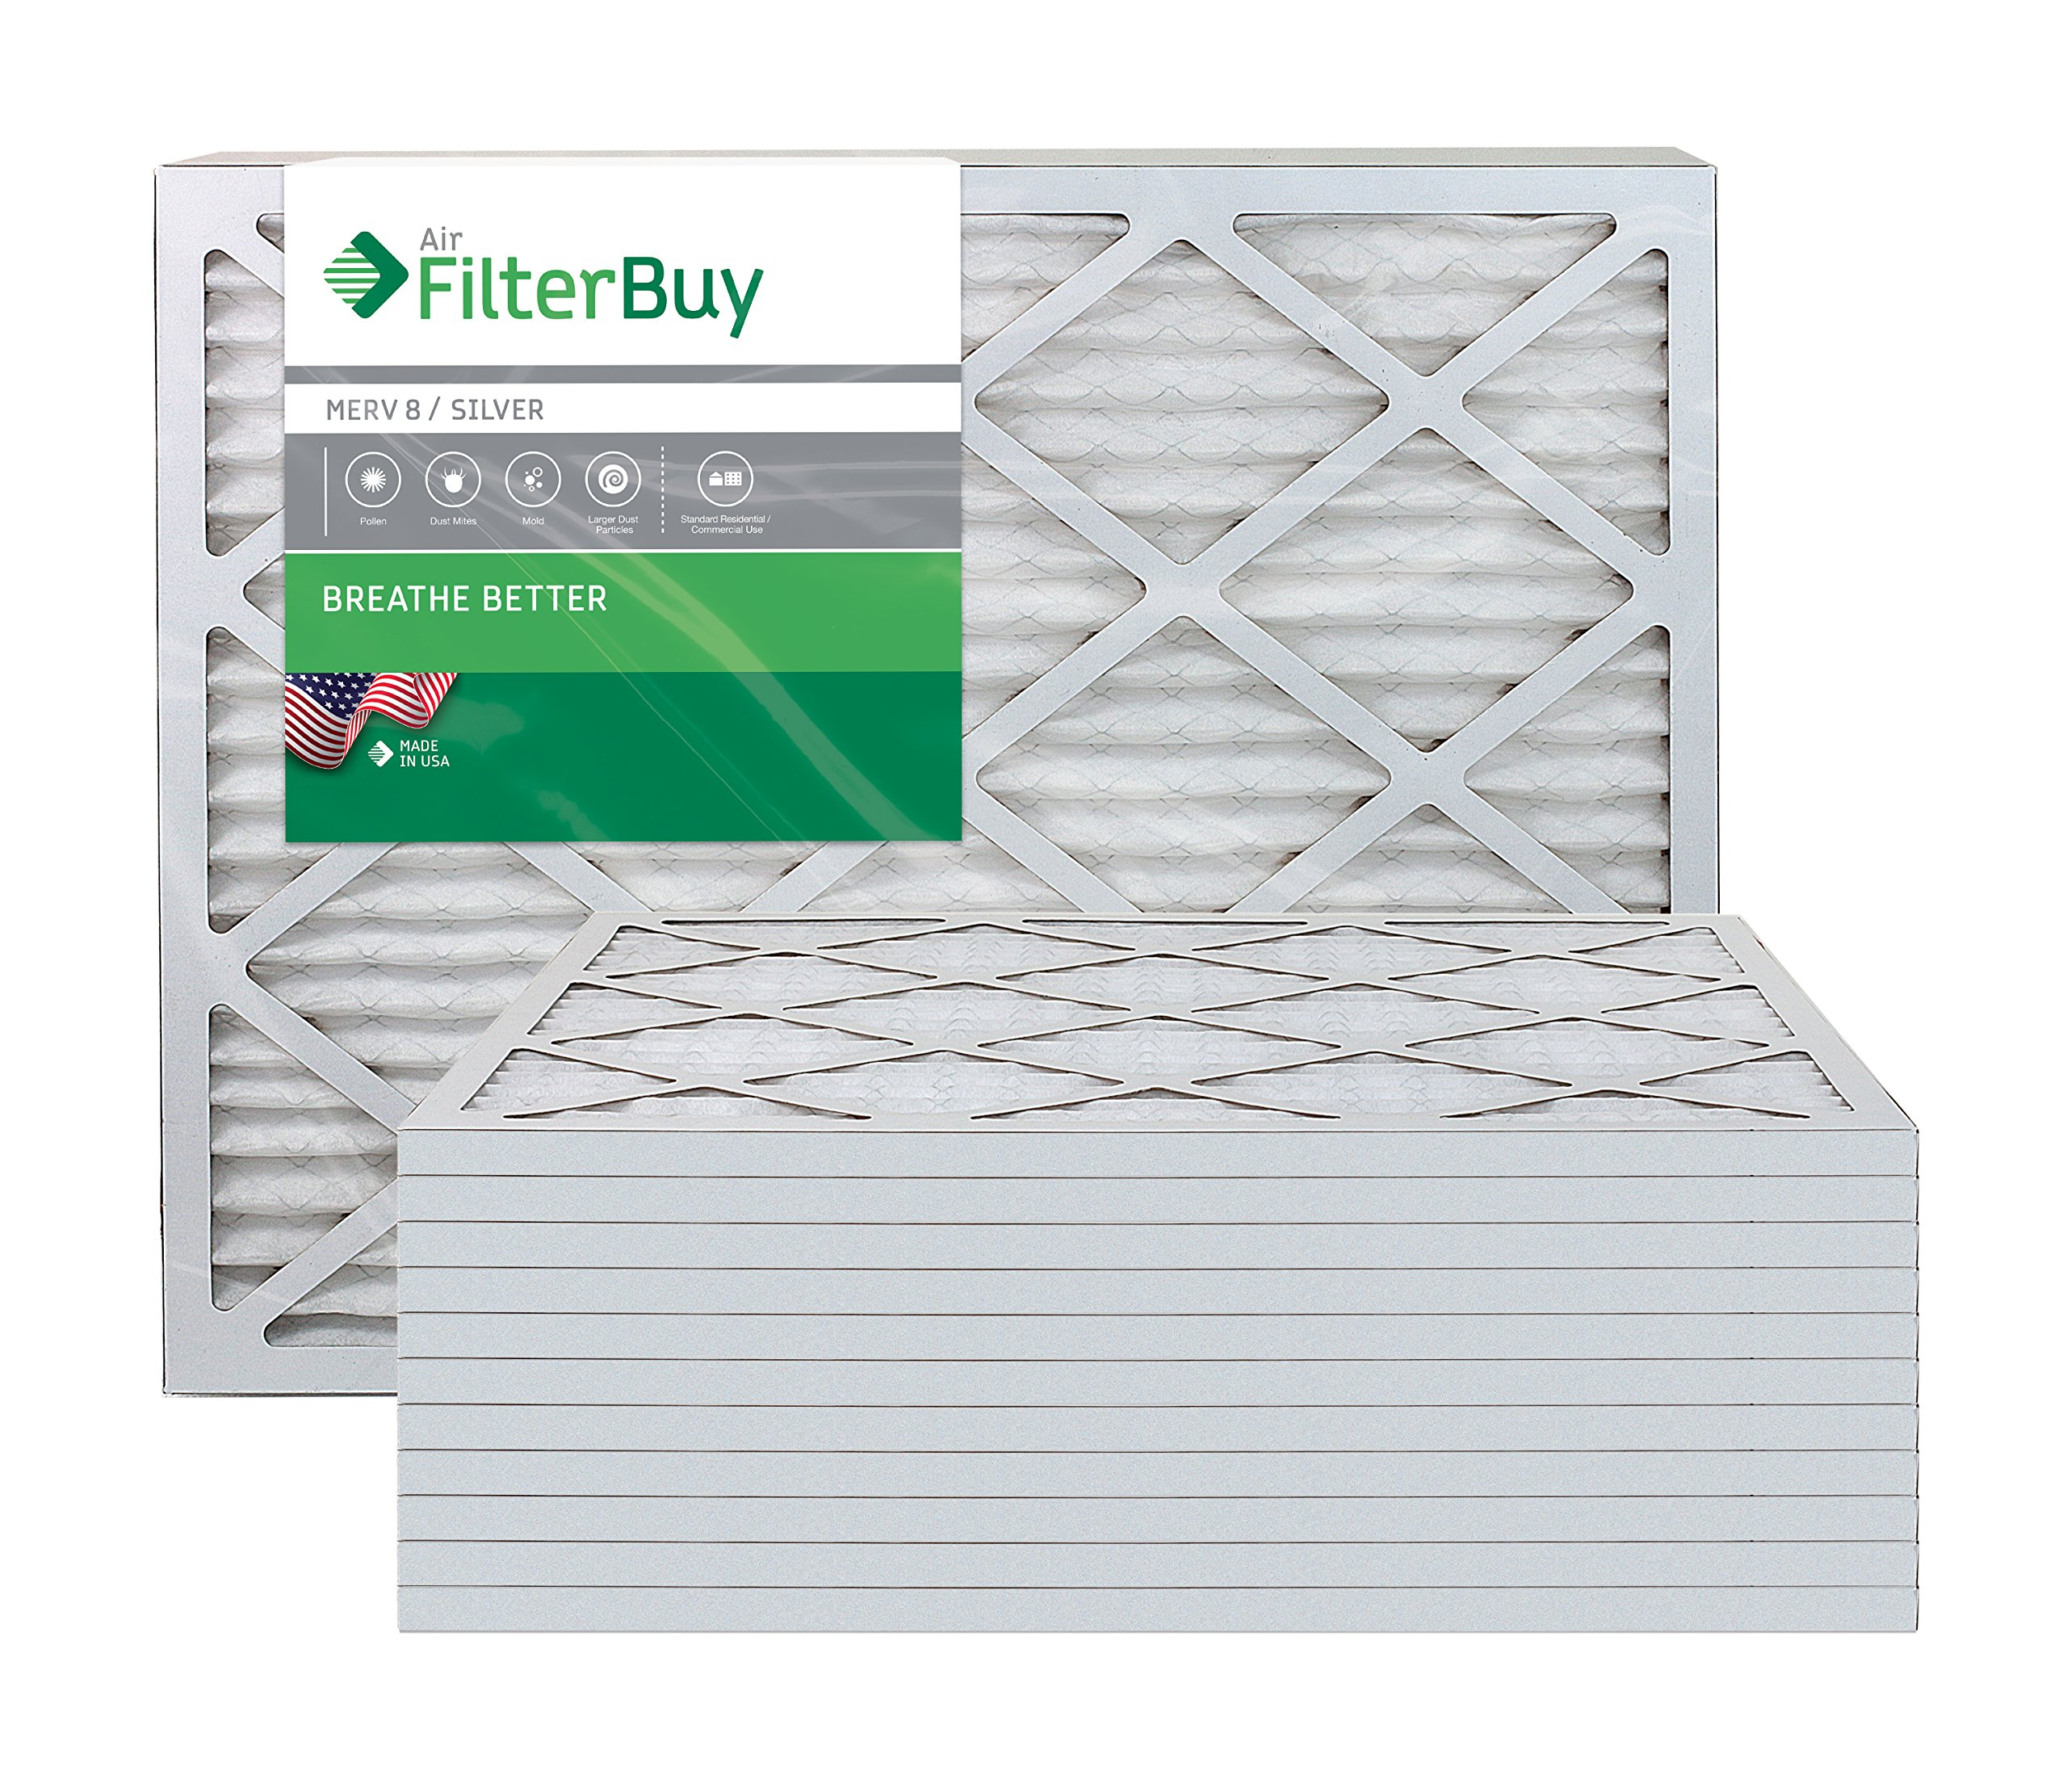 AFB Silver MERV 8 22x24x1 Pleated AC Furnace Air Filter. Pack of 12 Filters. 100% produced in the USA.